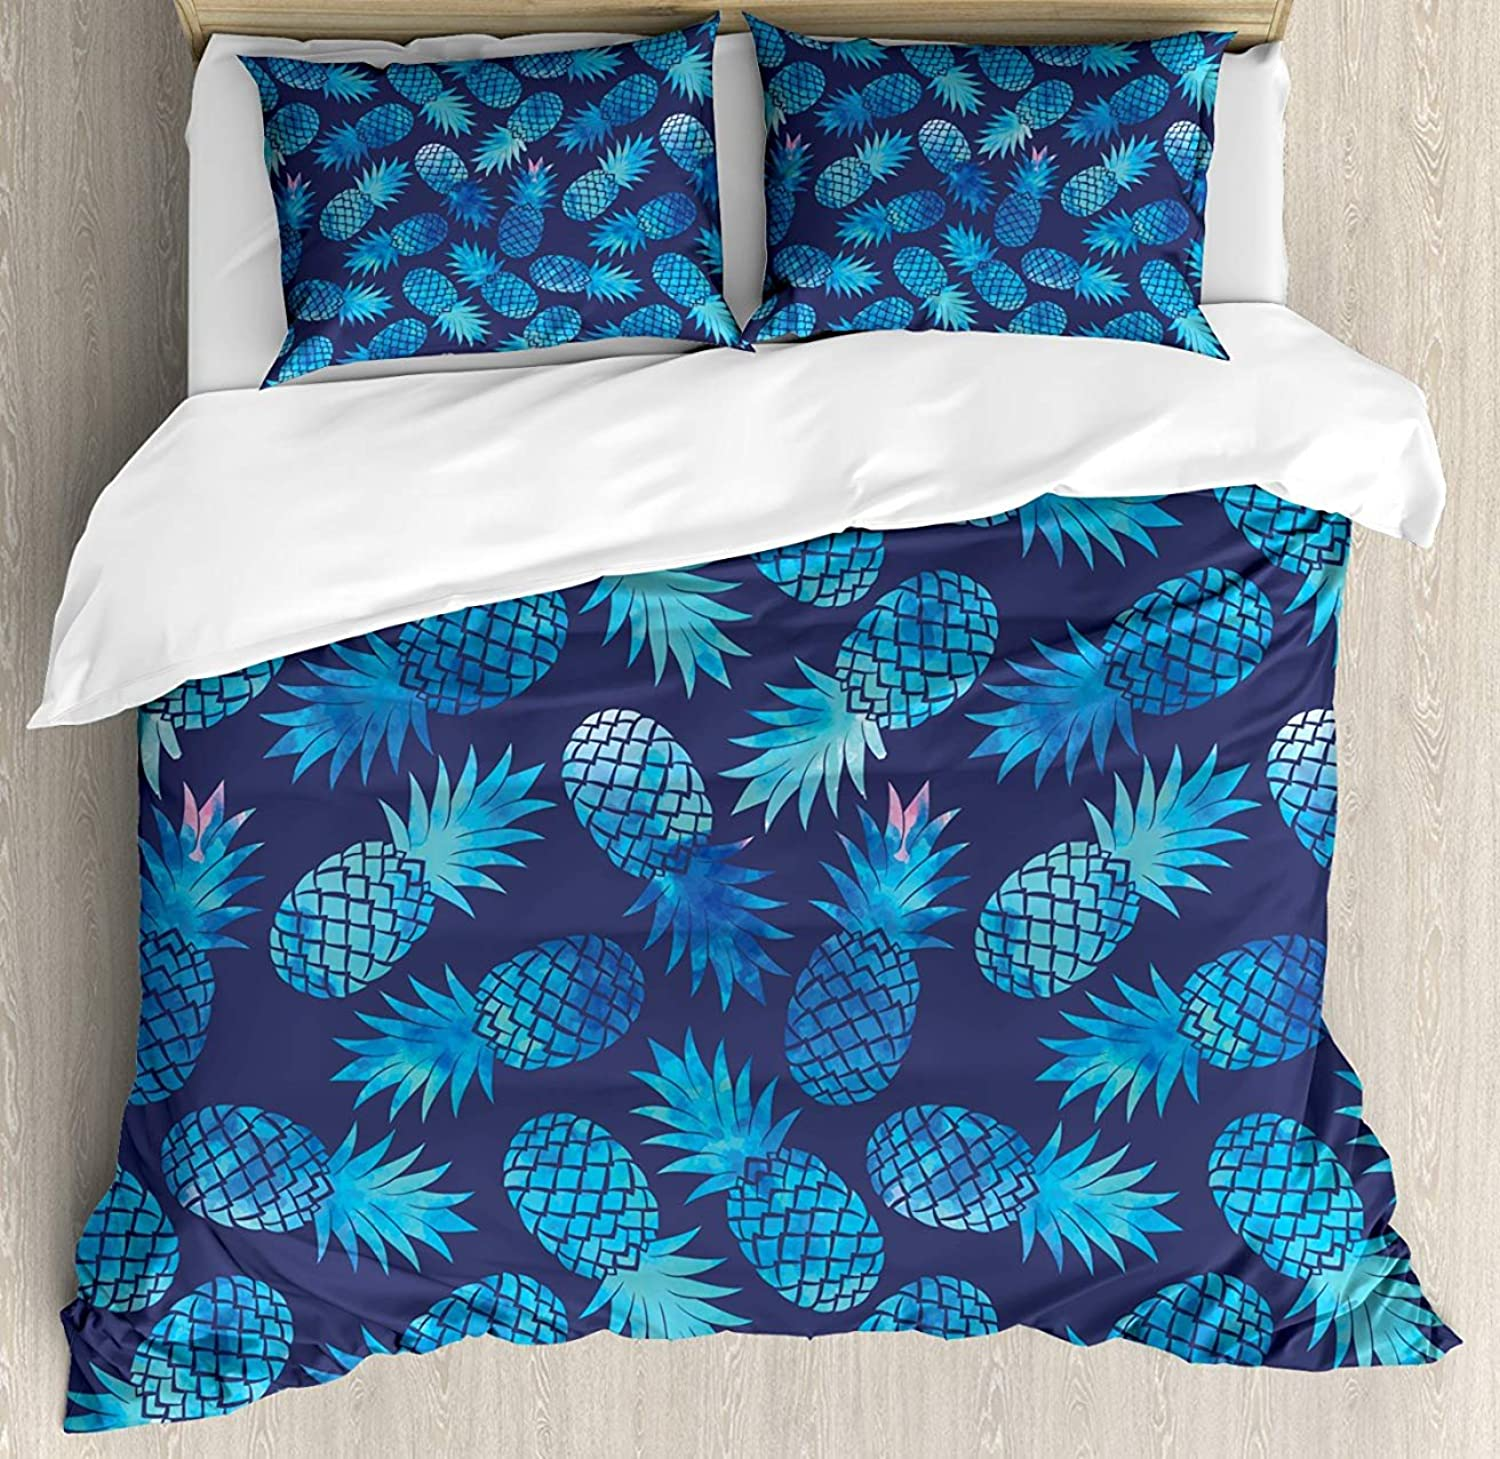 Z&L Home King Size Modern Luxury Soft Duvet Cover Set, Pineapple Figures Pattern Exotic Fruit in Digital Watercolor Illustration, Decorative 4 Pieces Bedding Sets, Night bluee Turquoise